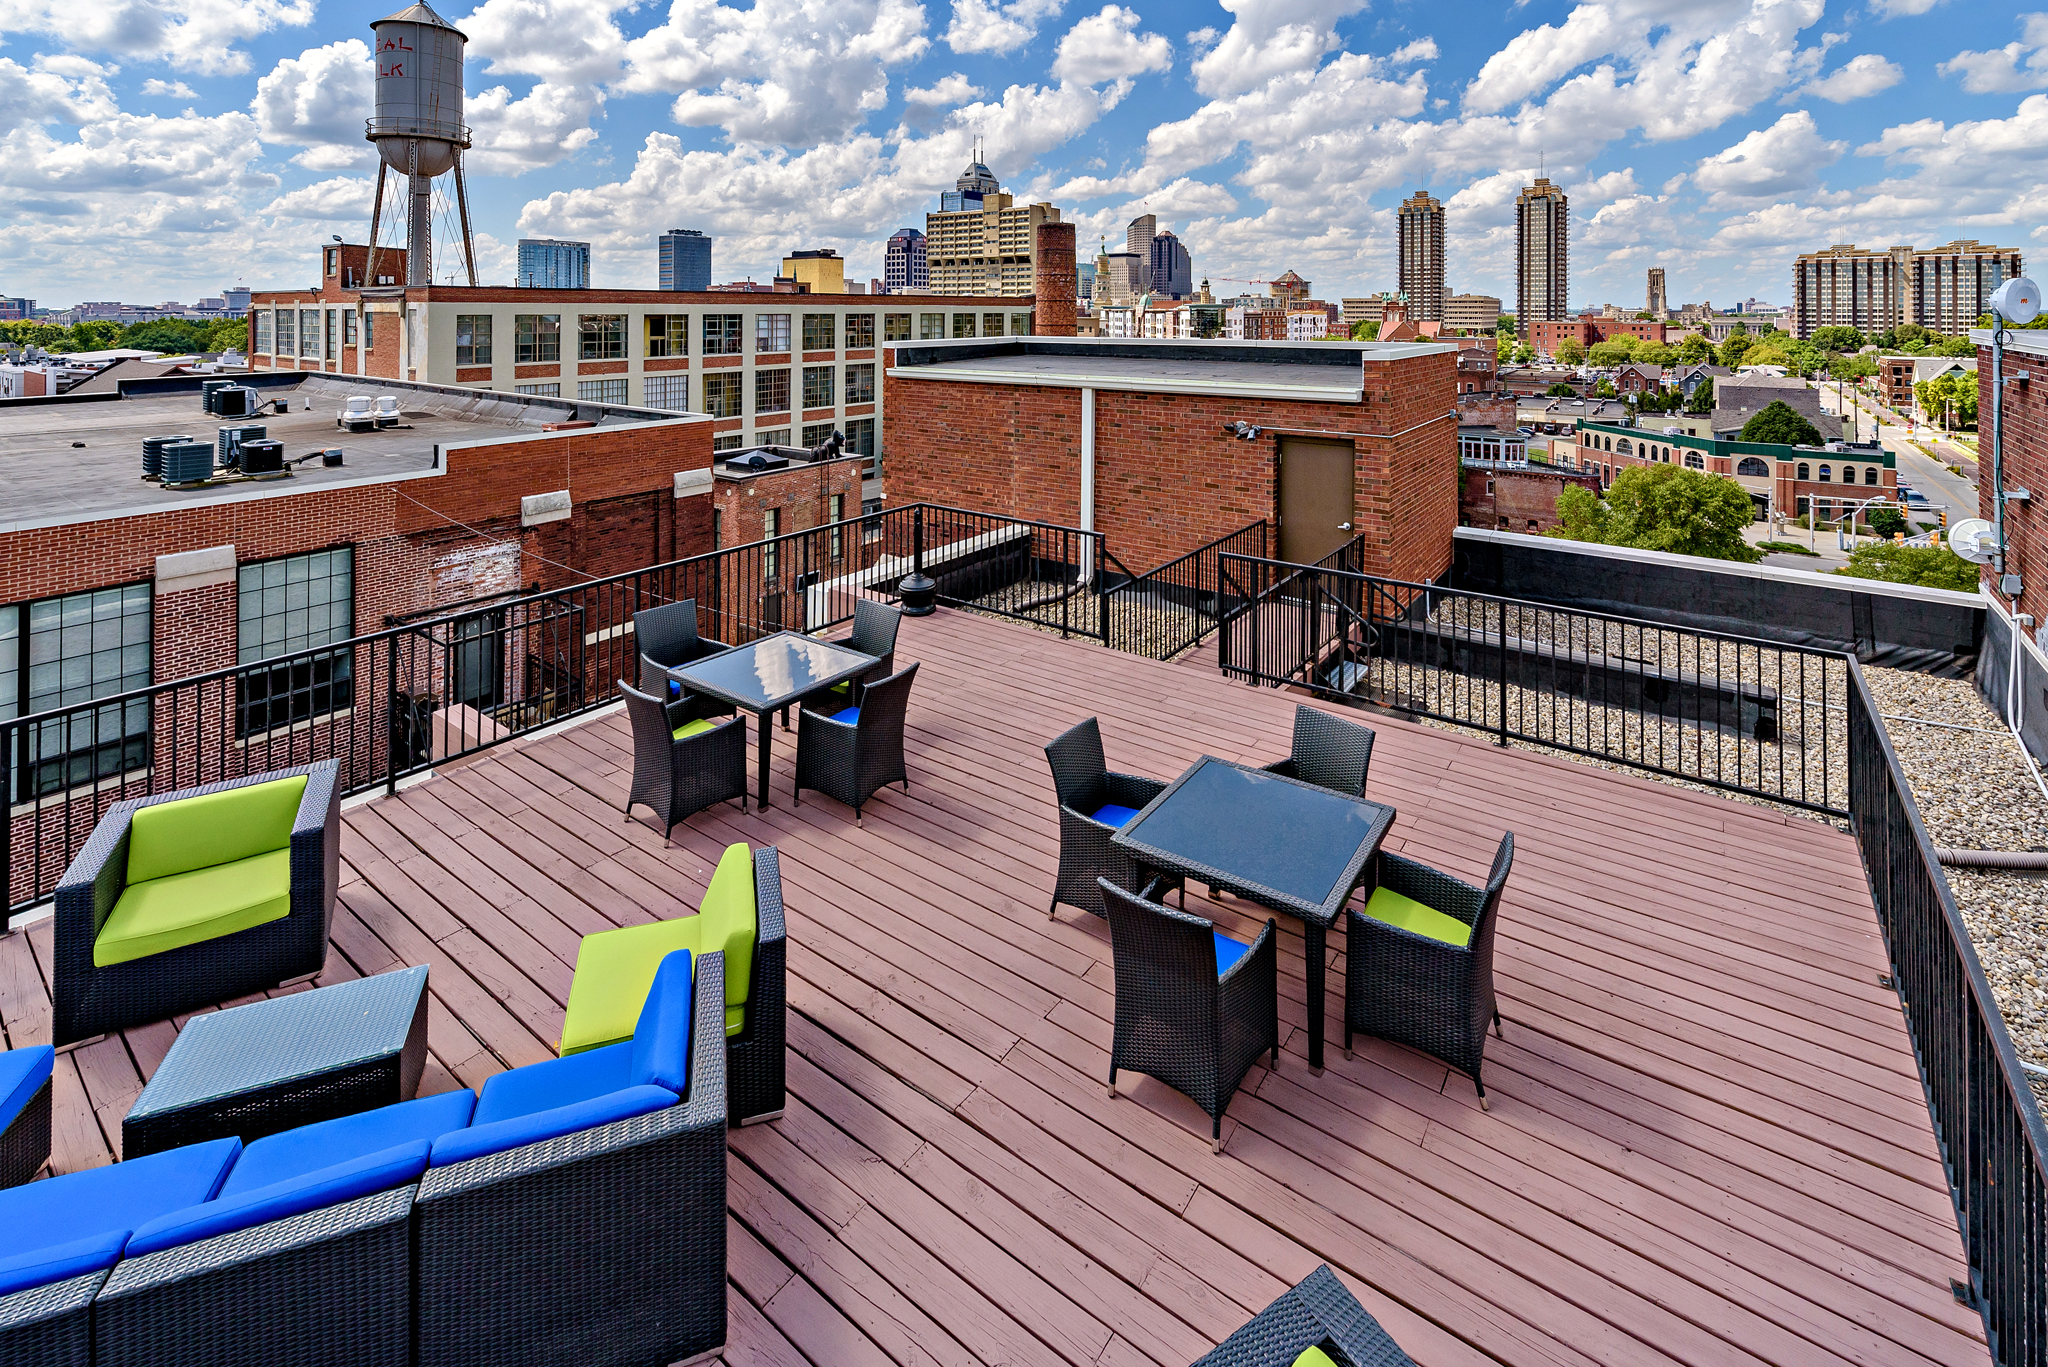 624 E Walnut Condo 46 Indpls IN 46204 Mill 9 Phase 1 - Mitch Rolsky with City Homes And Lifestyle (58)